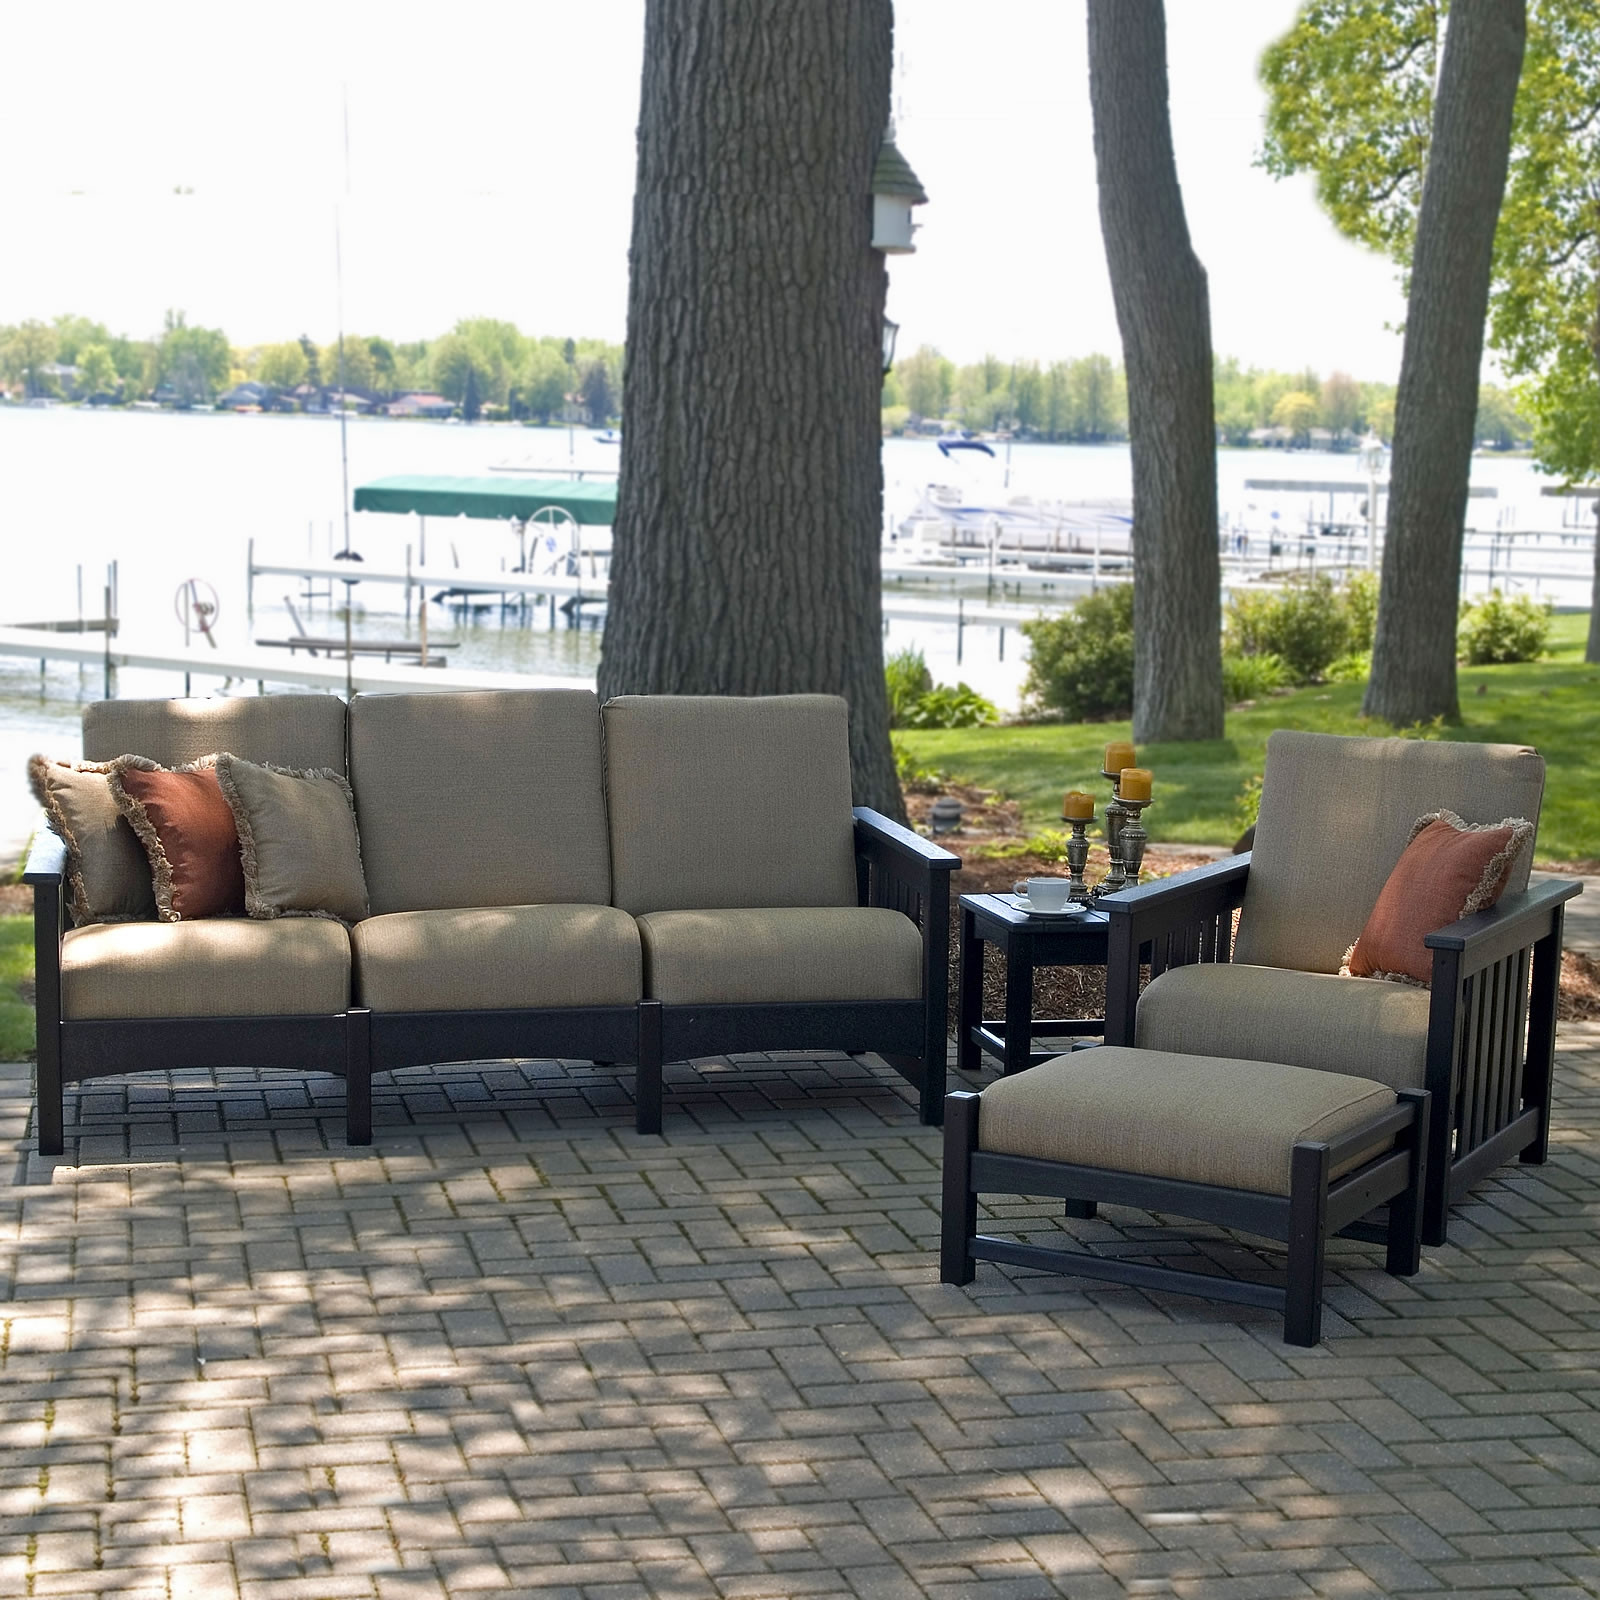 Polywood 4 Piece Outdoor Living Patio Set Mission